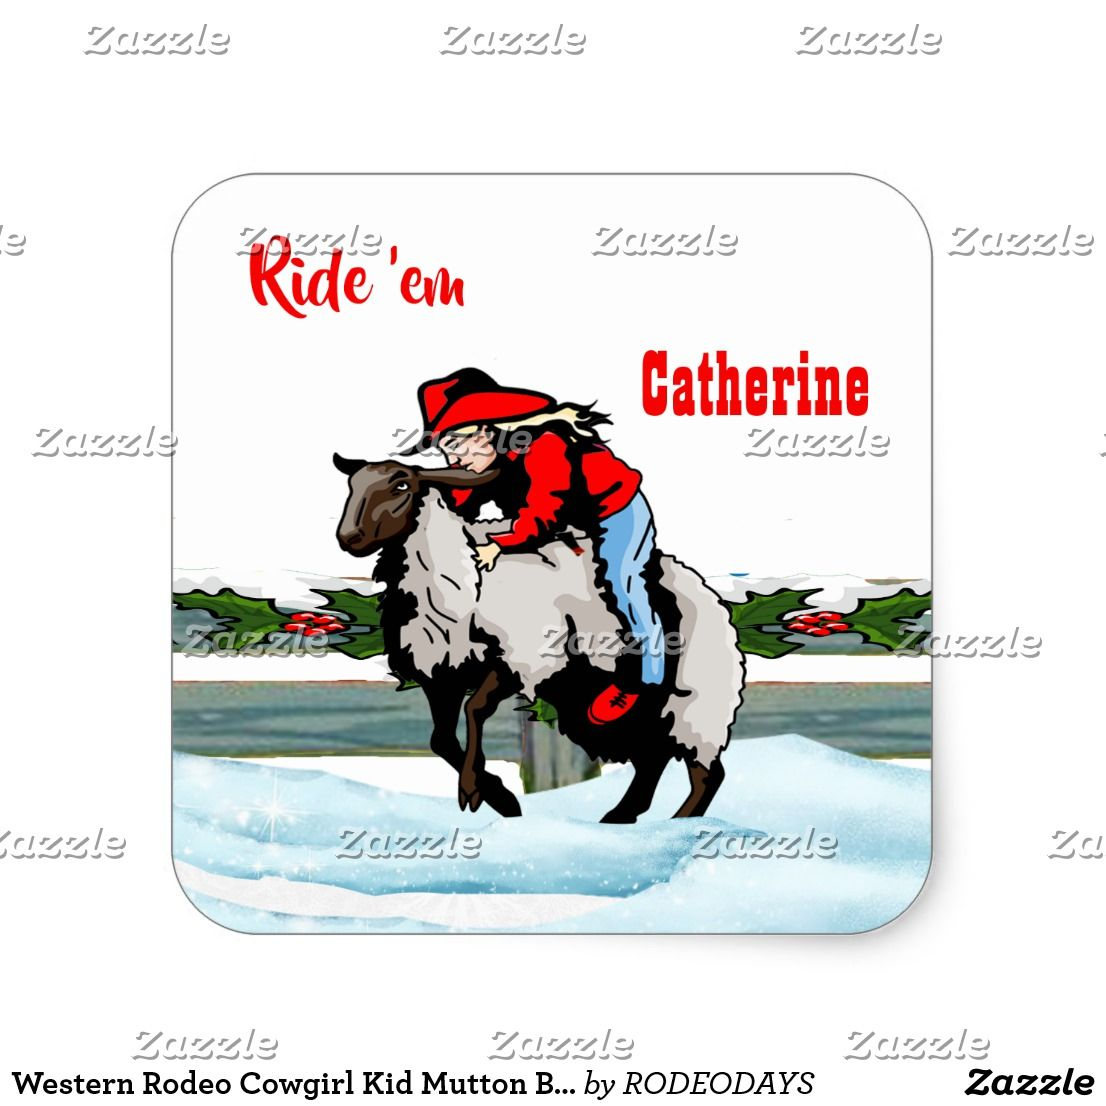 Western Rodeo Cowgirl Kid Mutton Buster Christmas Square Sticker ...